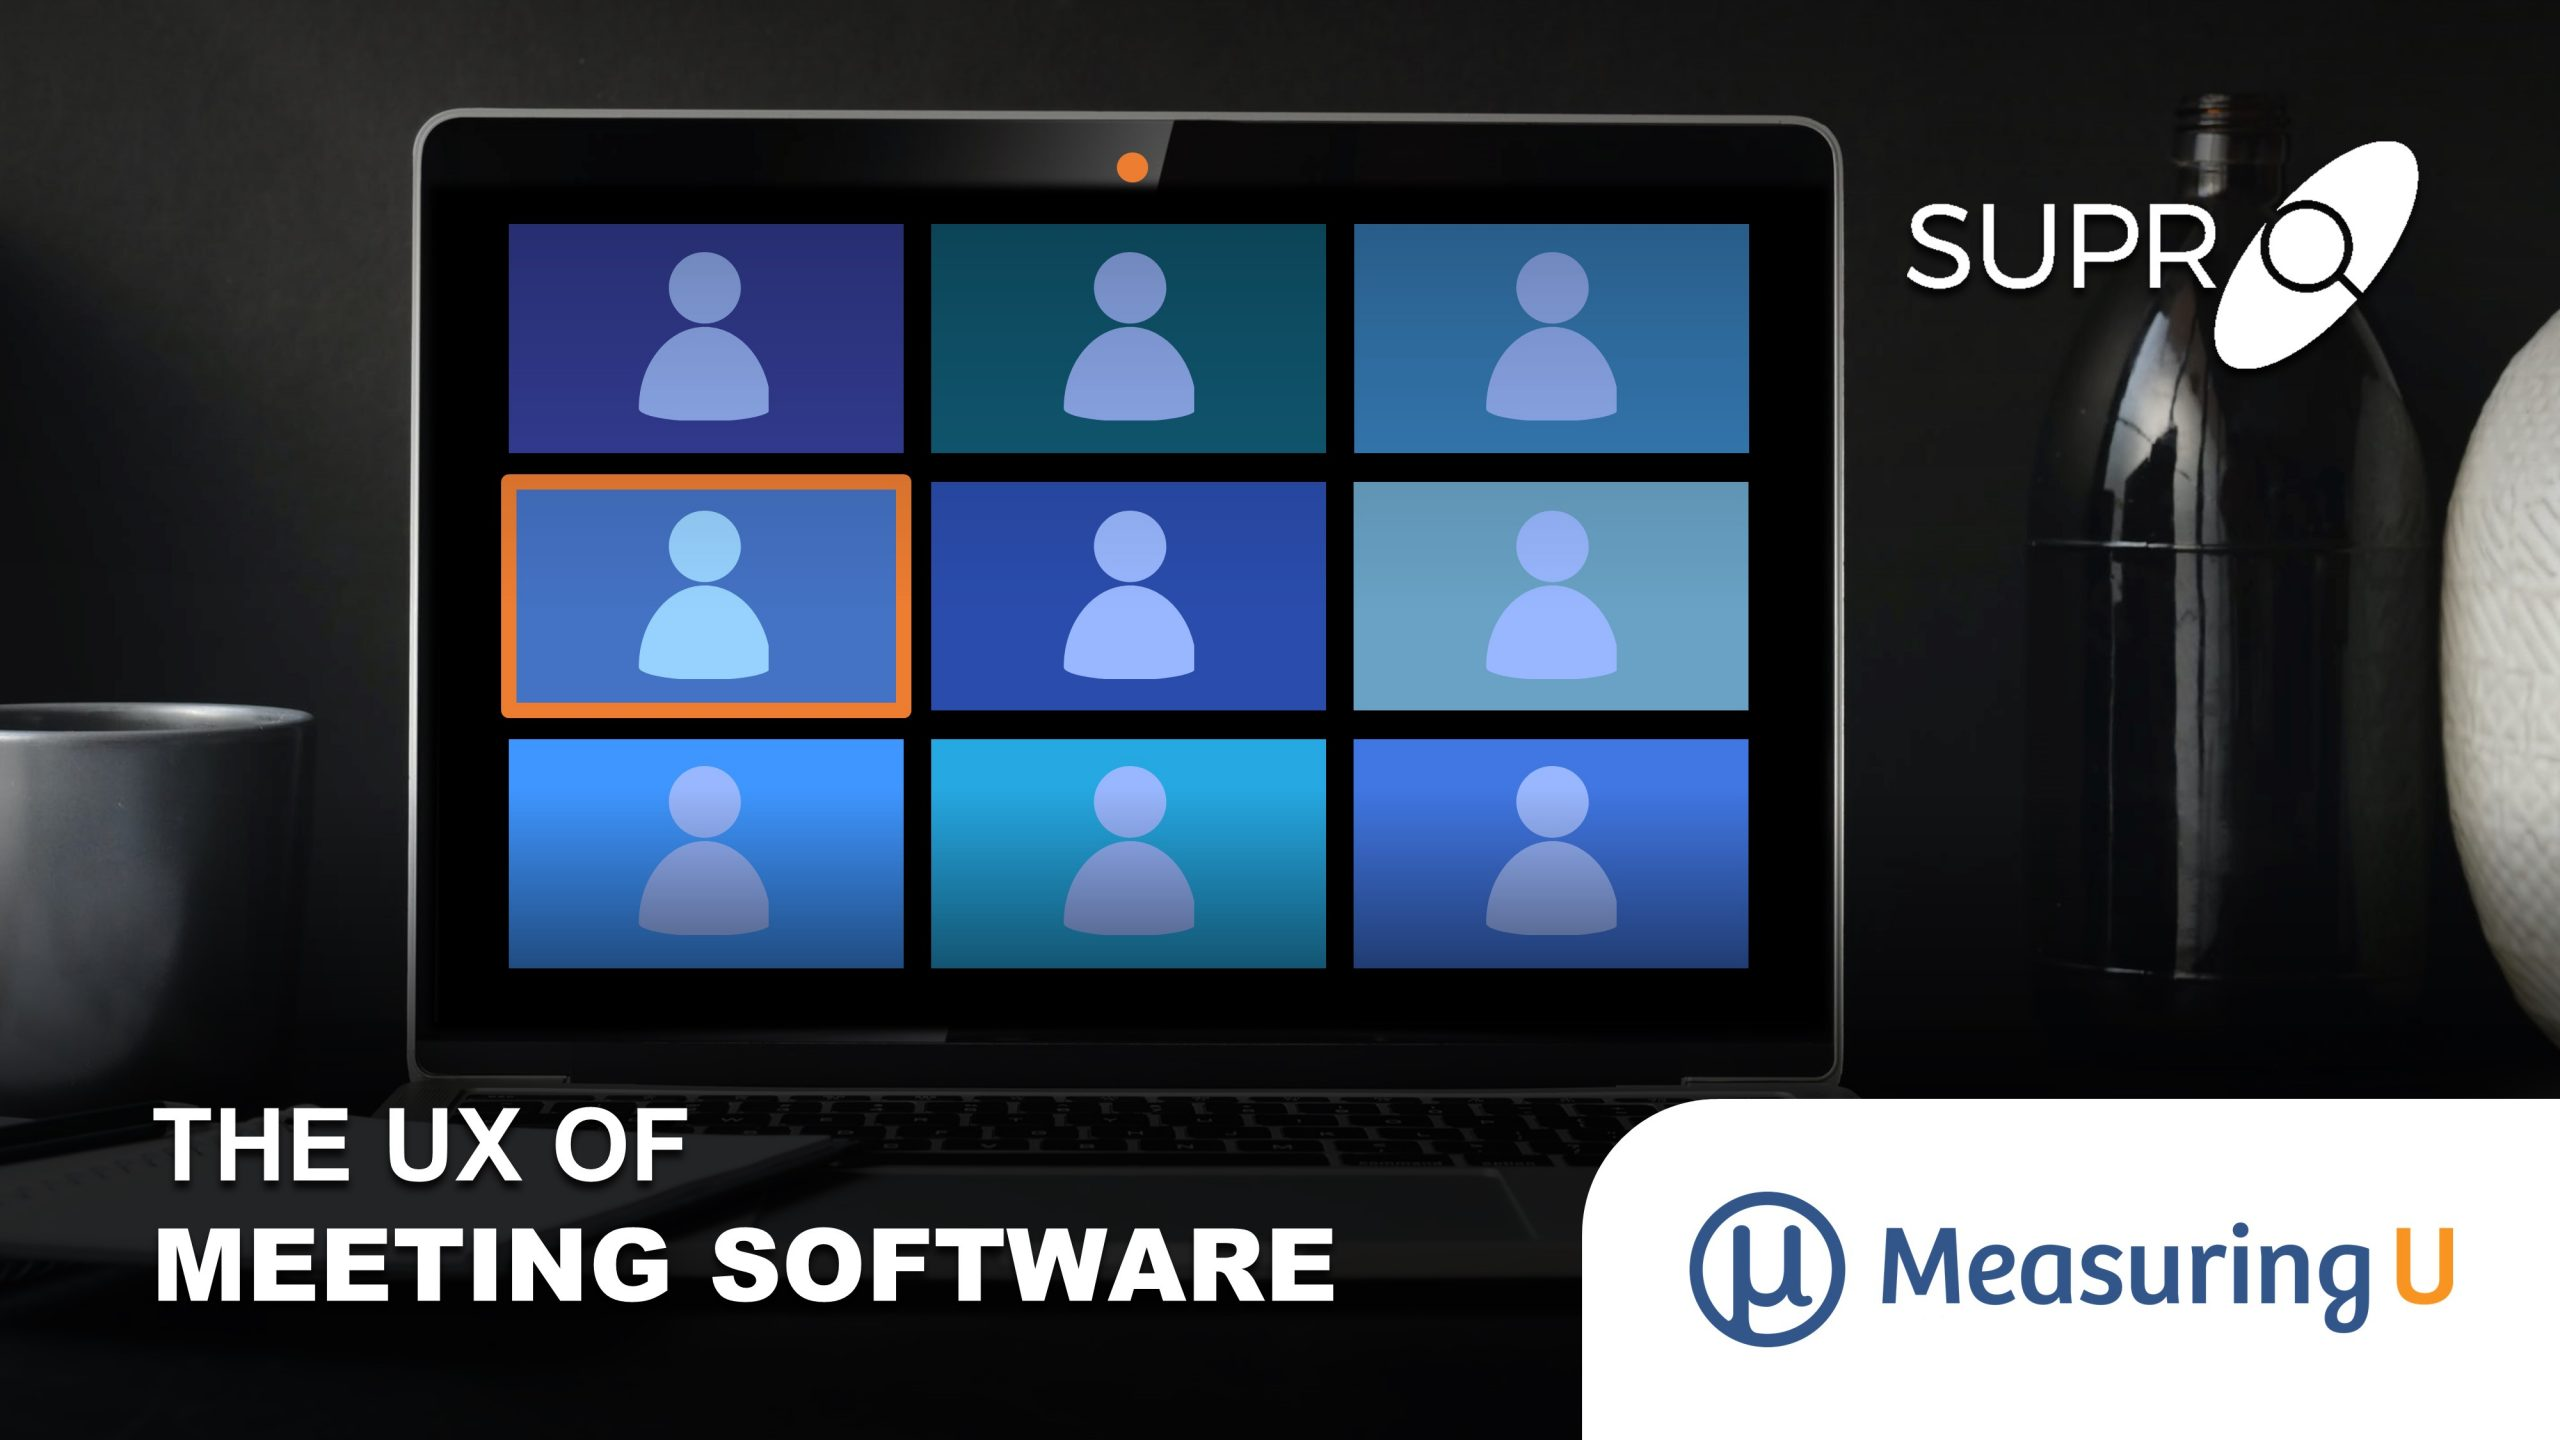 The User Experience of Meeting Software